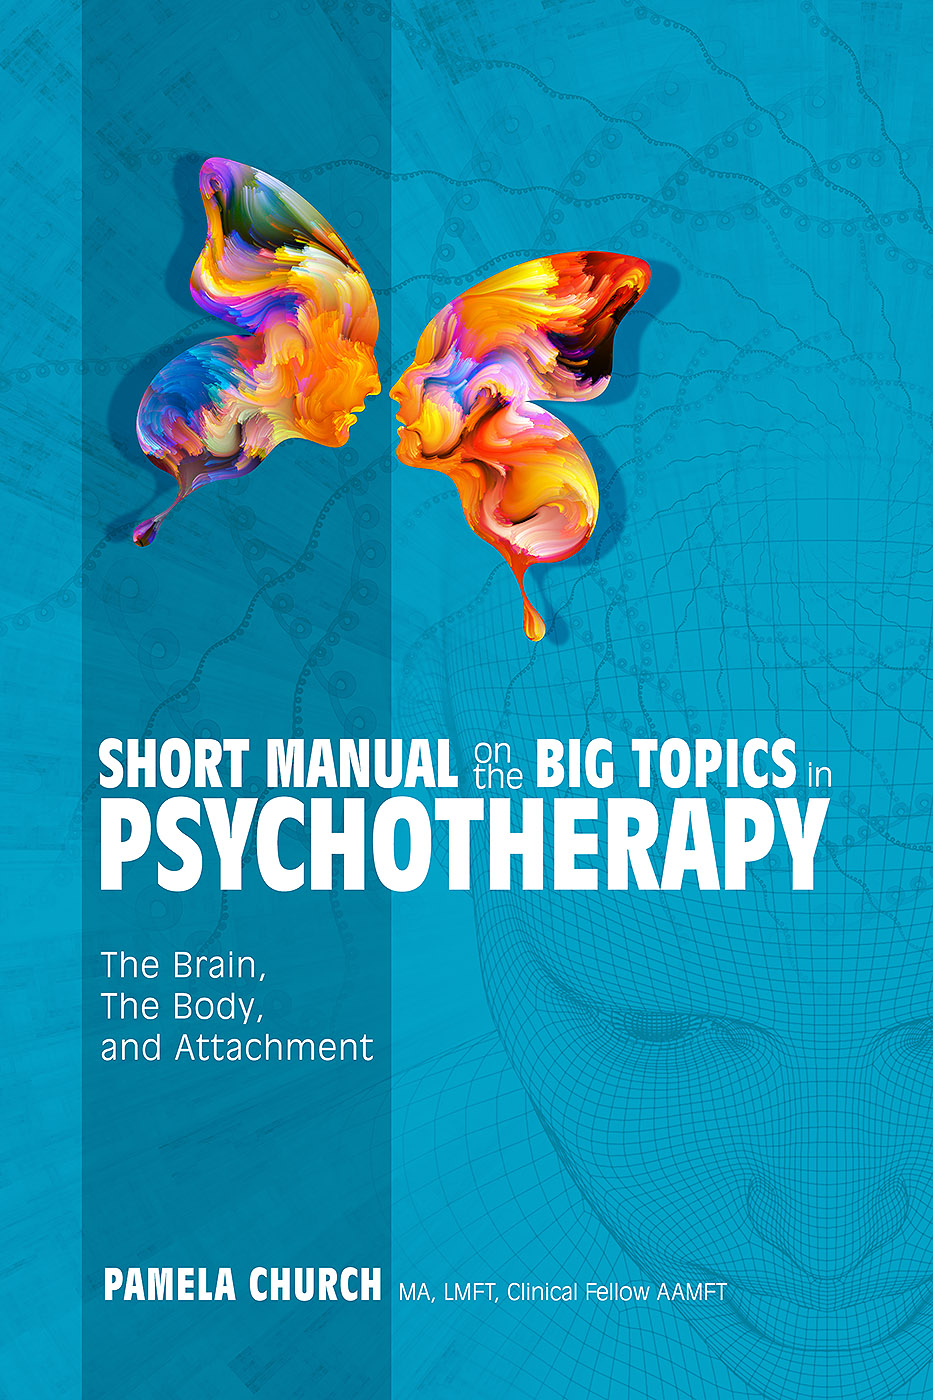 Short Manual on the Big Topics in Psychotherapy: The Brain, The Body, and Attachment